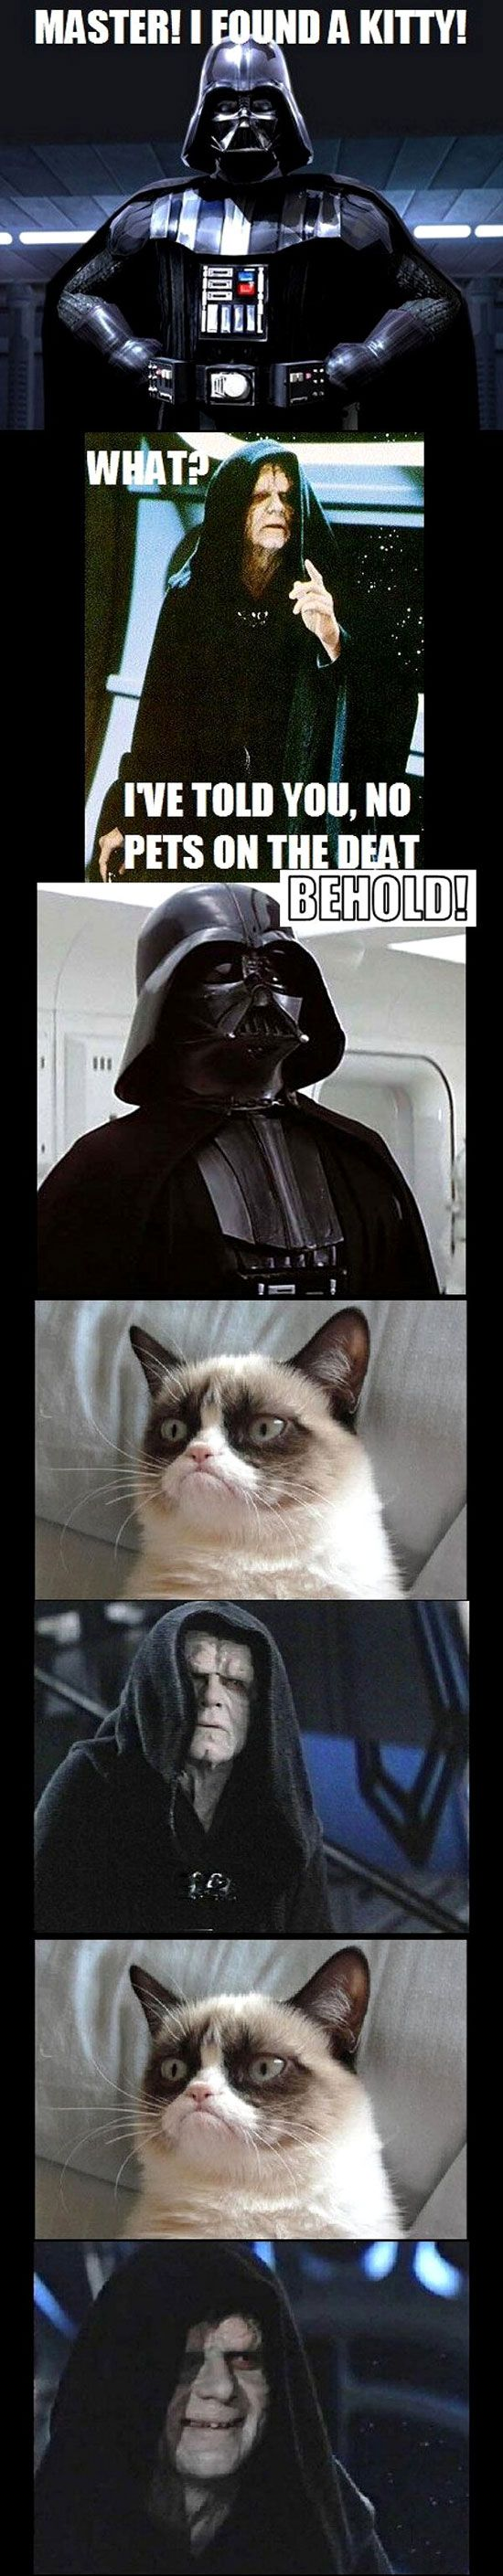 Funny Star Wars Pictures! (23 Pics) - Ned Hardy